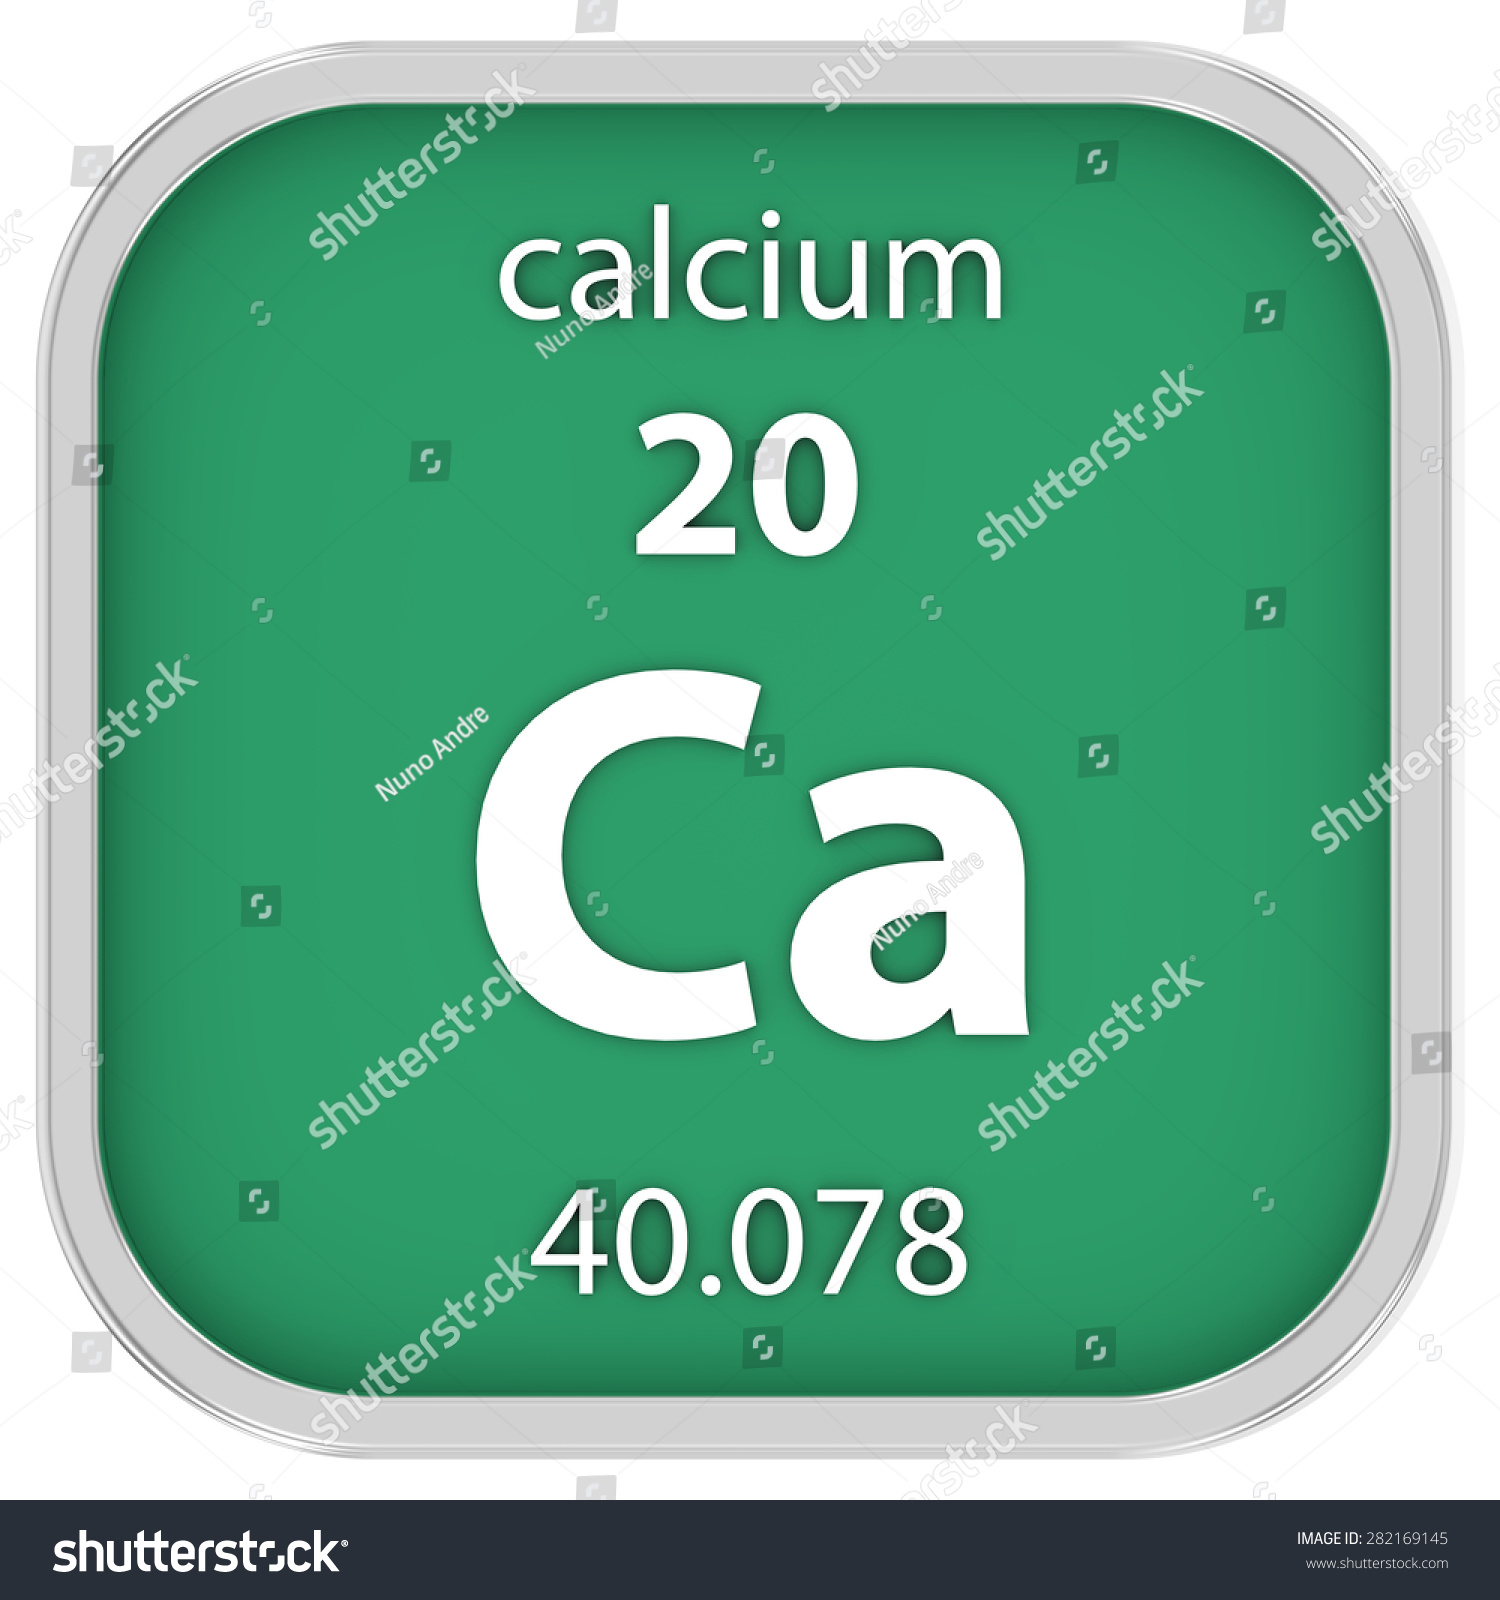 Periodic table for calcium image collections periodic table images periodic table for calcium gallery periodic table images periodic table for calcium image collections periodic table gamestrikefo Choice Image